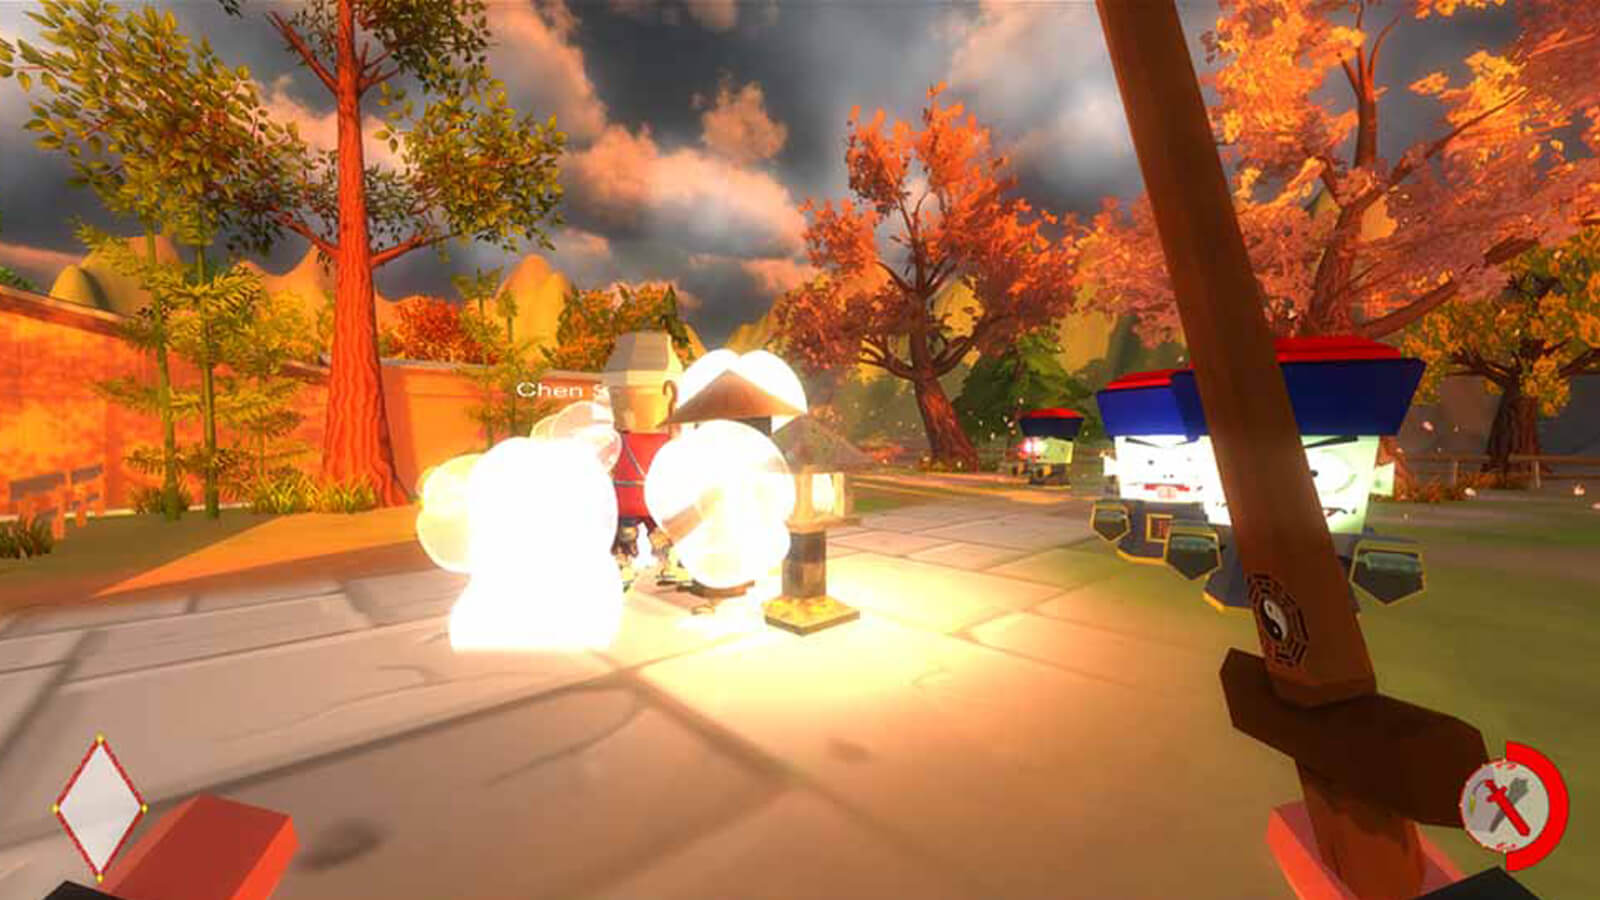 Two zombies come at the player in a first person view. The player's sword is seen and an exploding enemy is on the left.